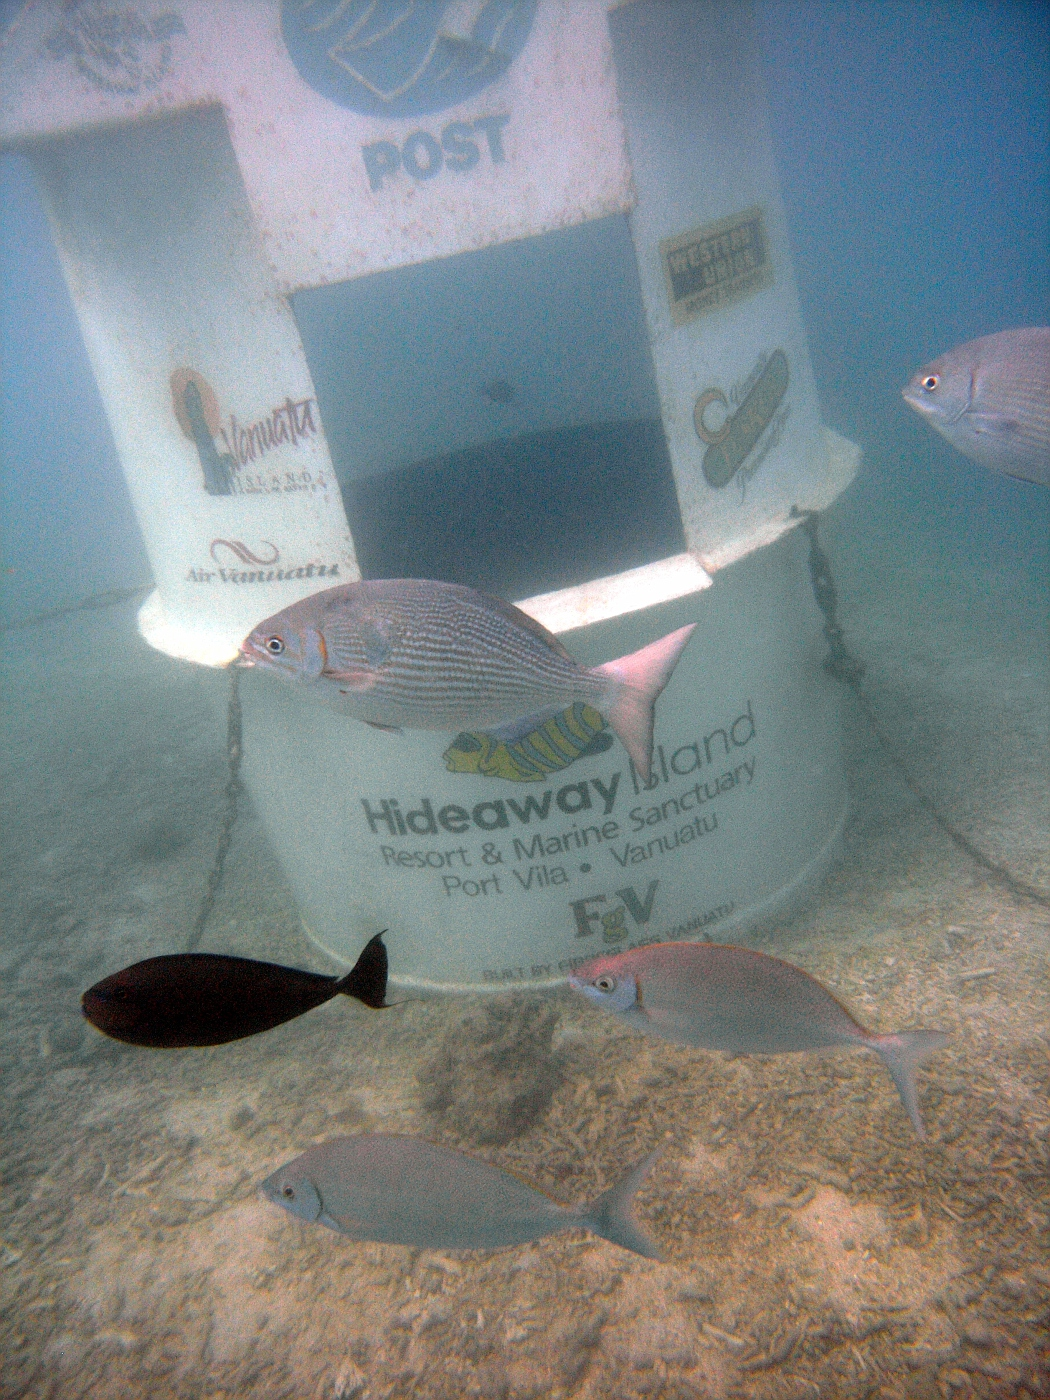 World's First Underwater Post Office